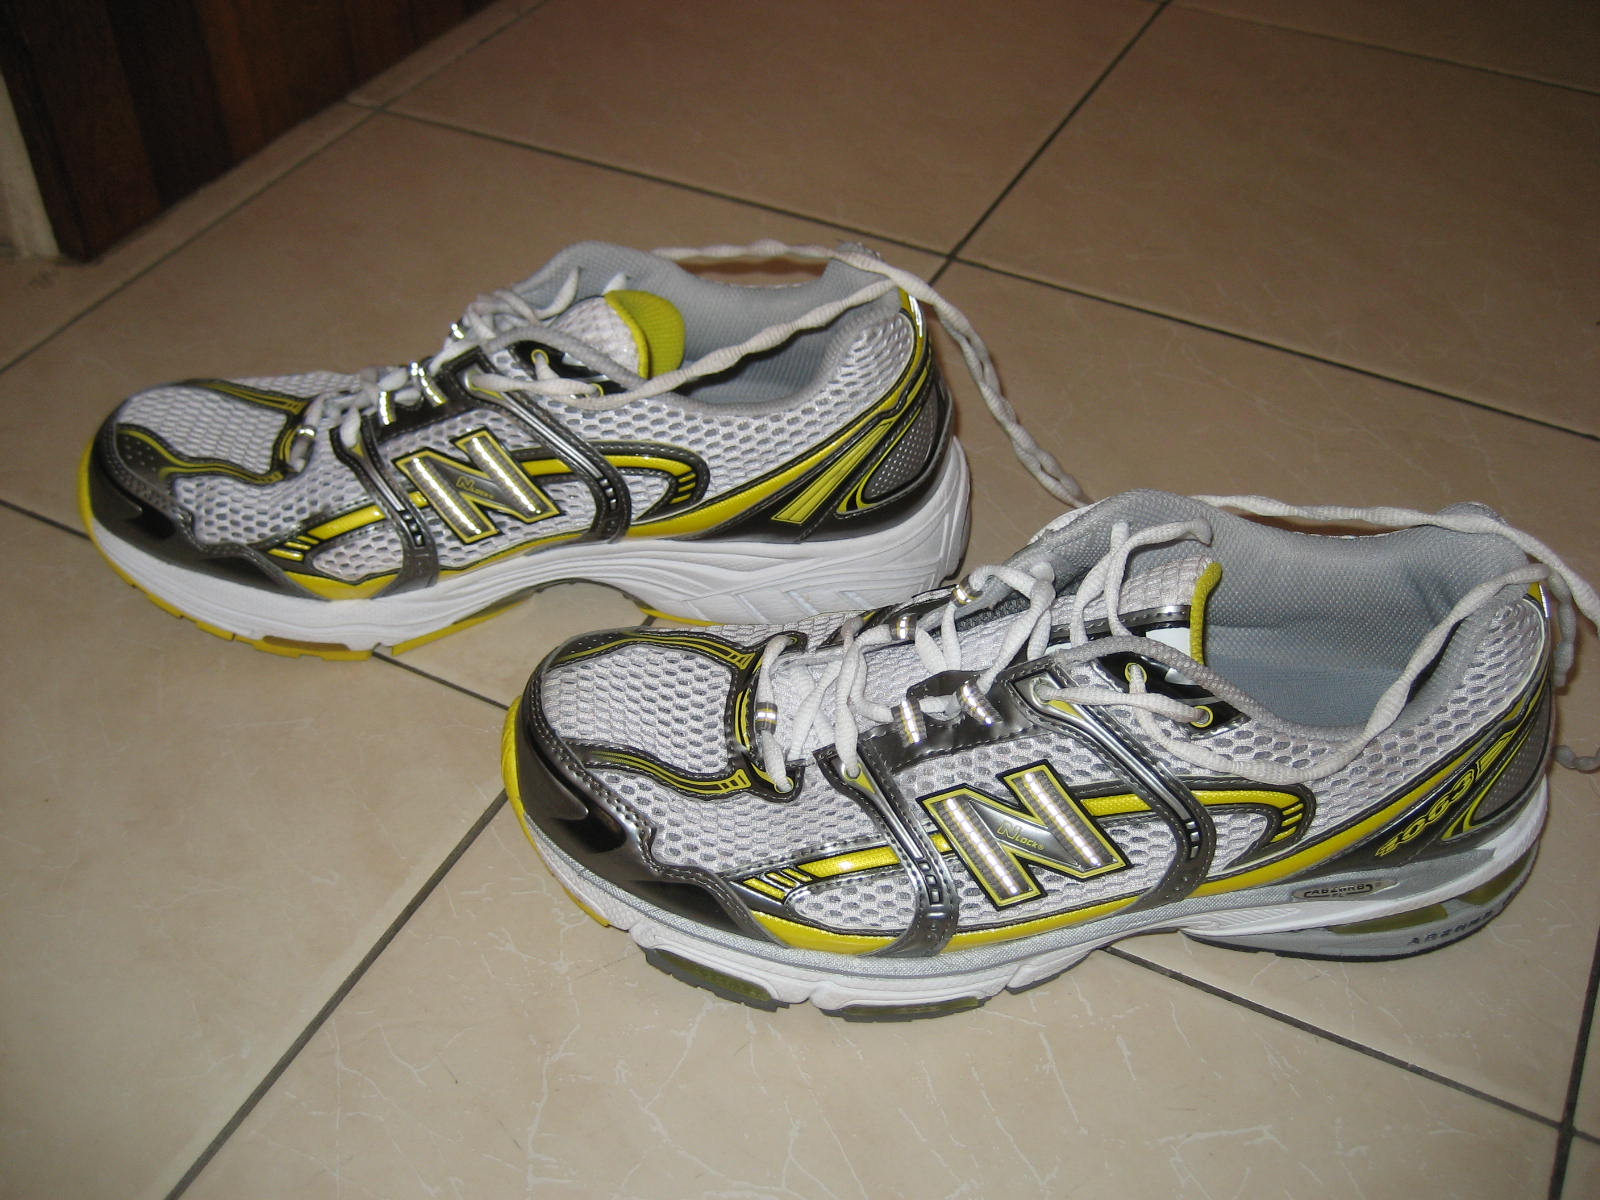 tout neuf cc925 2c9c8 PACEMAKERS MALAYSIA   Spirit of Pia!: New Balance 1063 for ...